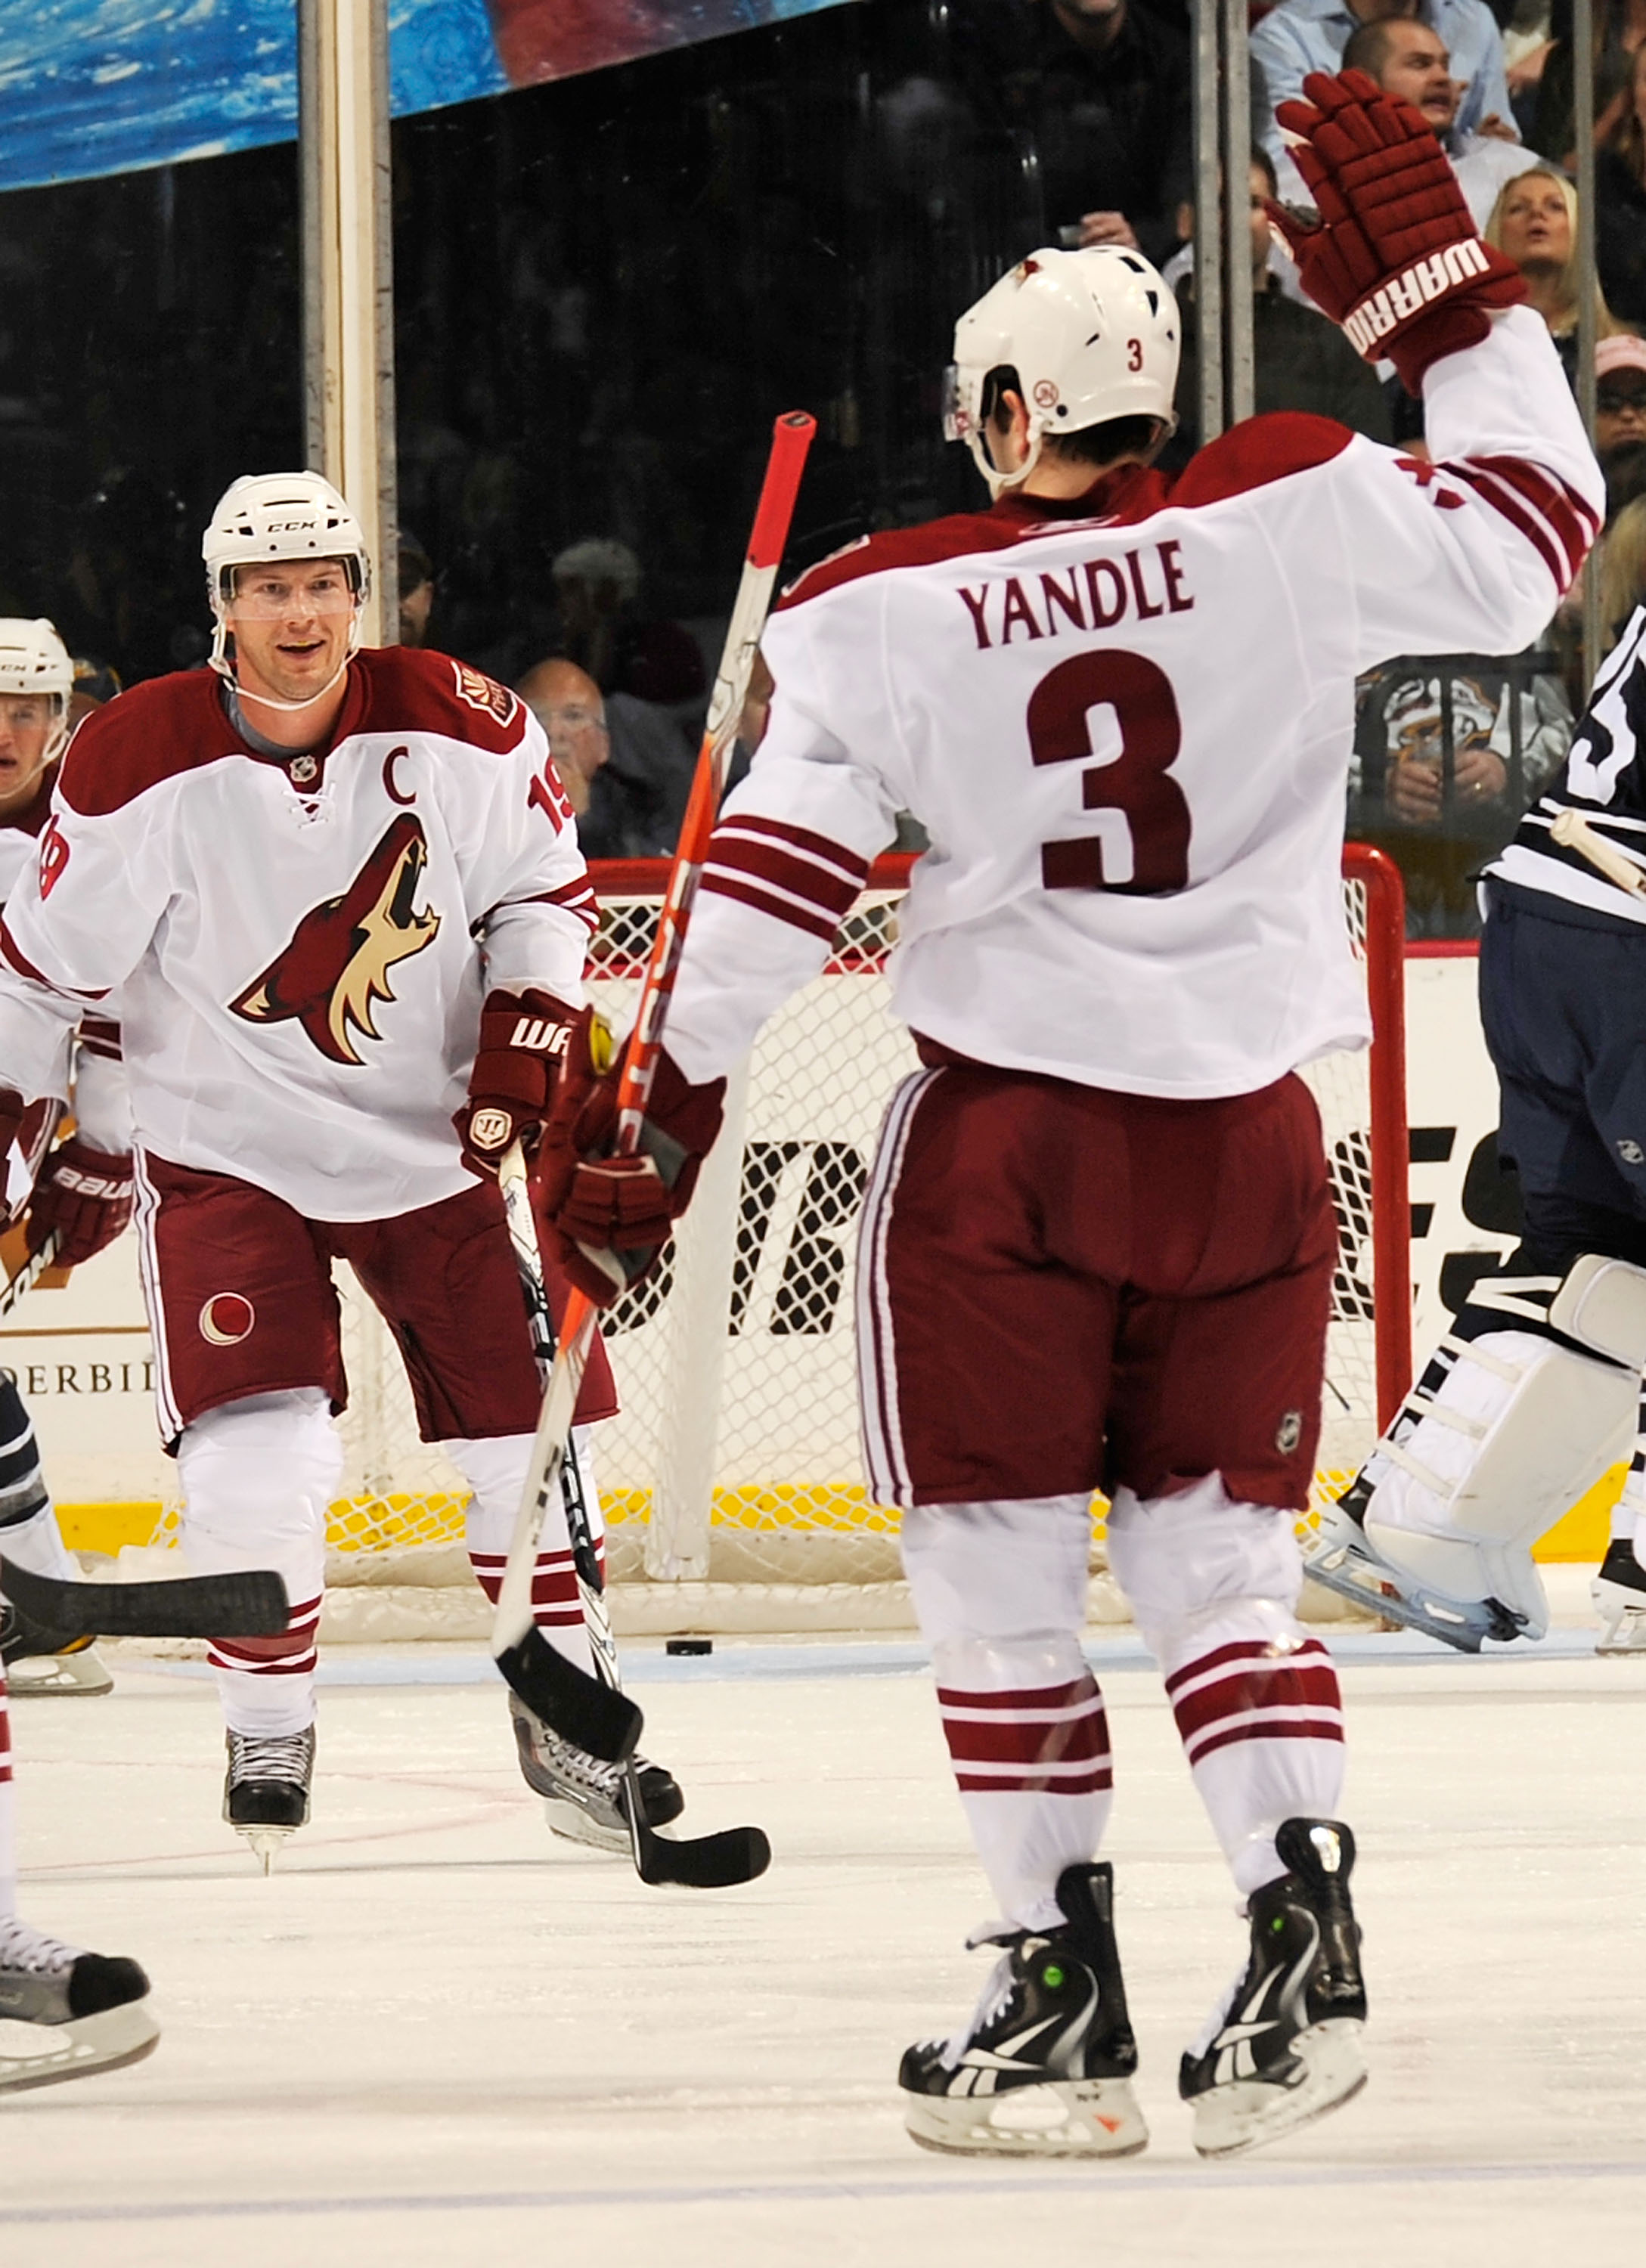 NASHVILLE, TN - FEBRUARY 19:  Shane Doan #19 and Keith Yandle #3 of the Phoenix Coyotes celebrate a goal against the Nashville Predators on February 19, 2011 at the Bridgestone Arena in Nashville, Tennessee.  (Photo by Frederick Breedon/Getty Images)